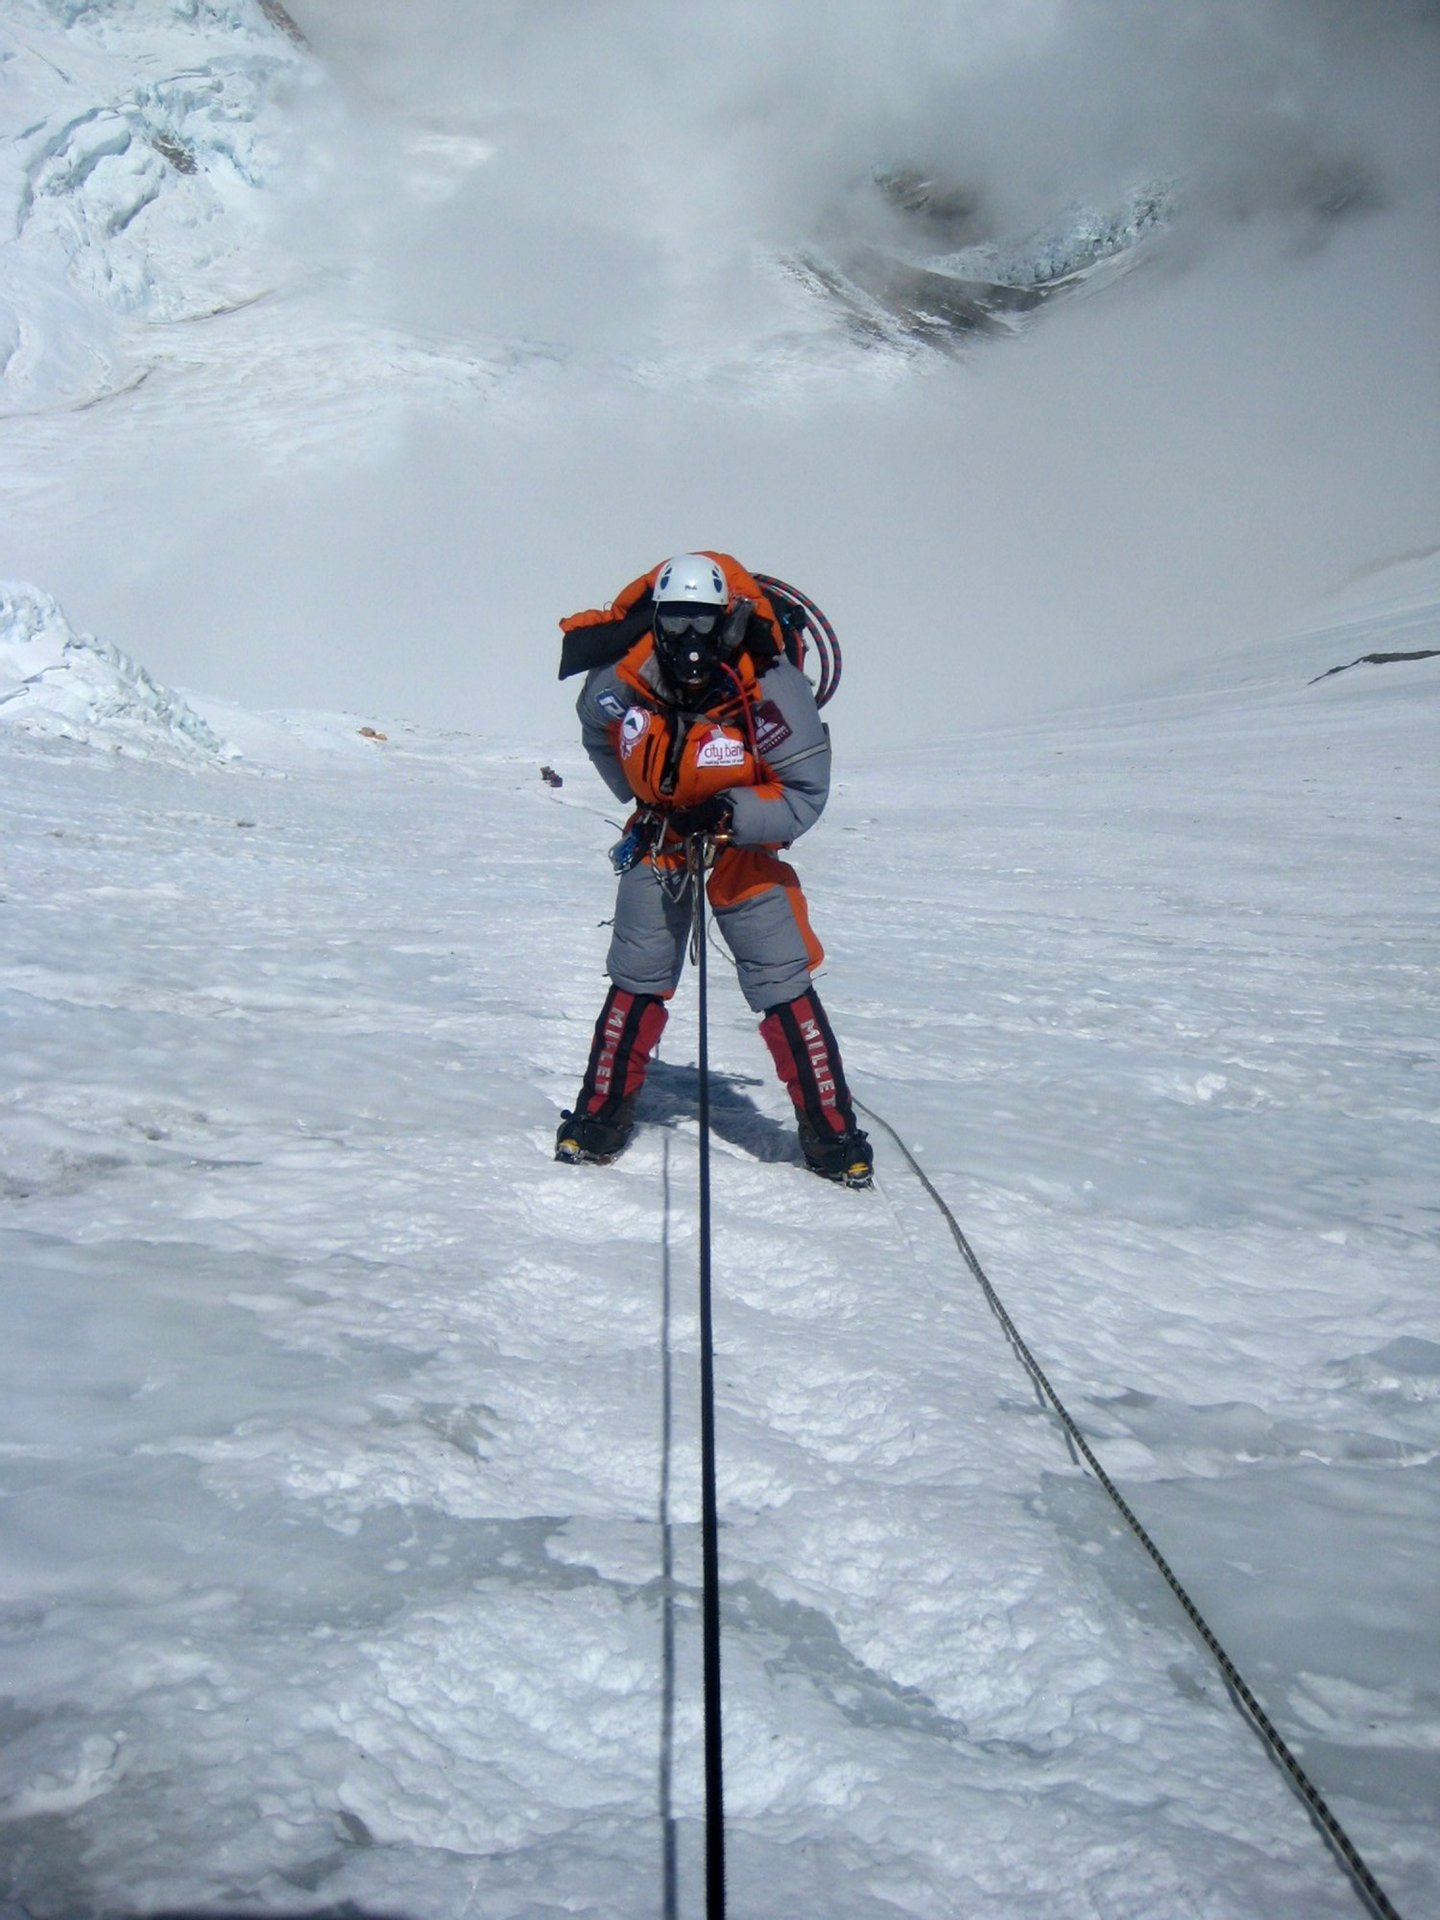 Female Bangladeshi mountaineer Wasfia Nazreen descends on the lonely Lhotse face on Mount Everest on May 27, 2012. Wasfia Nazreen, 29, became the second Bangladeshi woman to summit the world's tallest mountain on May 26, 2012 and is climbing the highest peak on each of the continents to celebrate 40 years of Bangladeshi independence. AFP PHOTO/ Ngima Girmen Sherpa (Photo credit should read Ngima Girmen Sherpa/AFP/GettyImages)